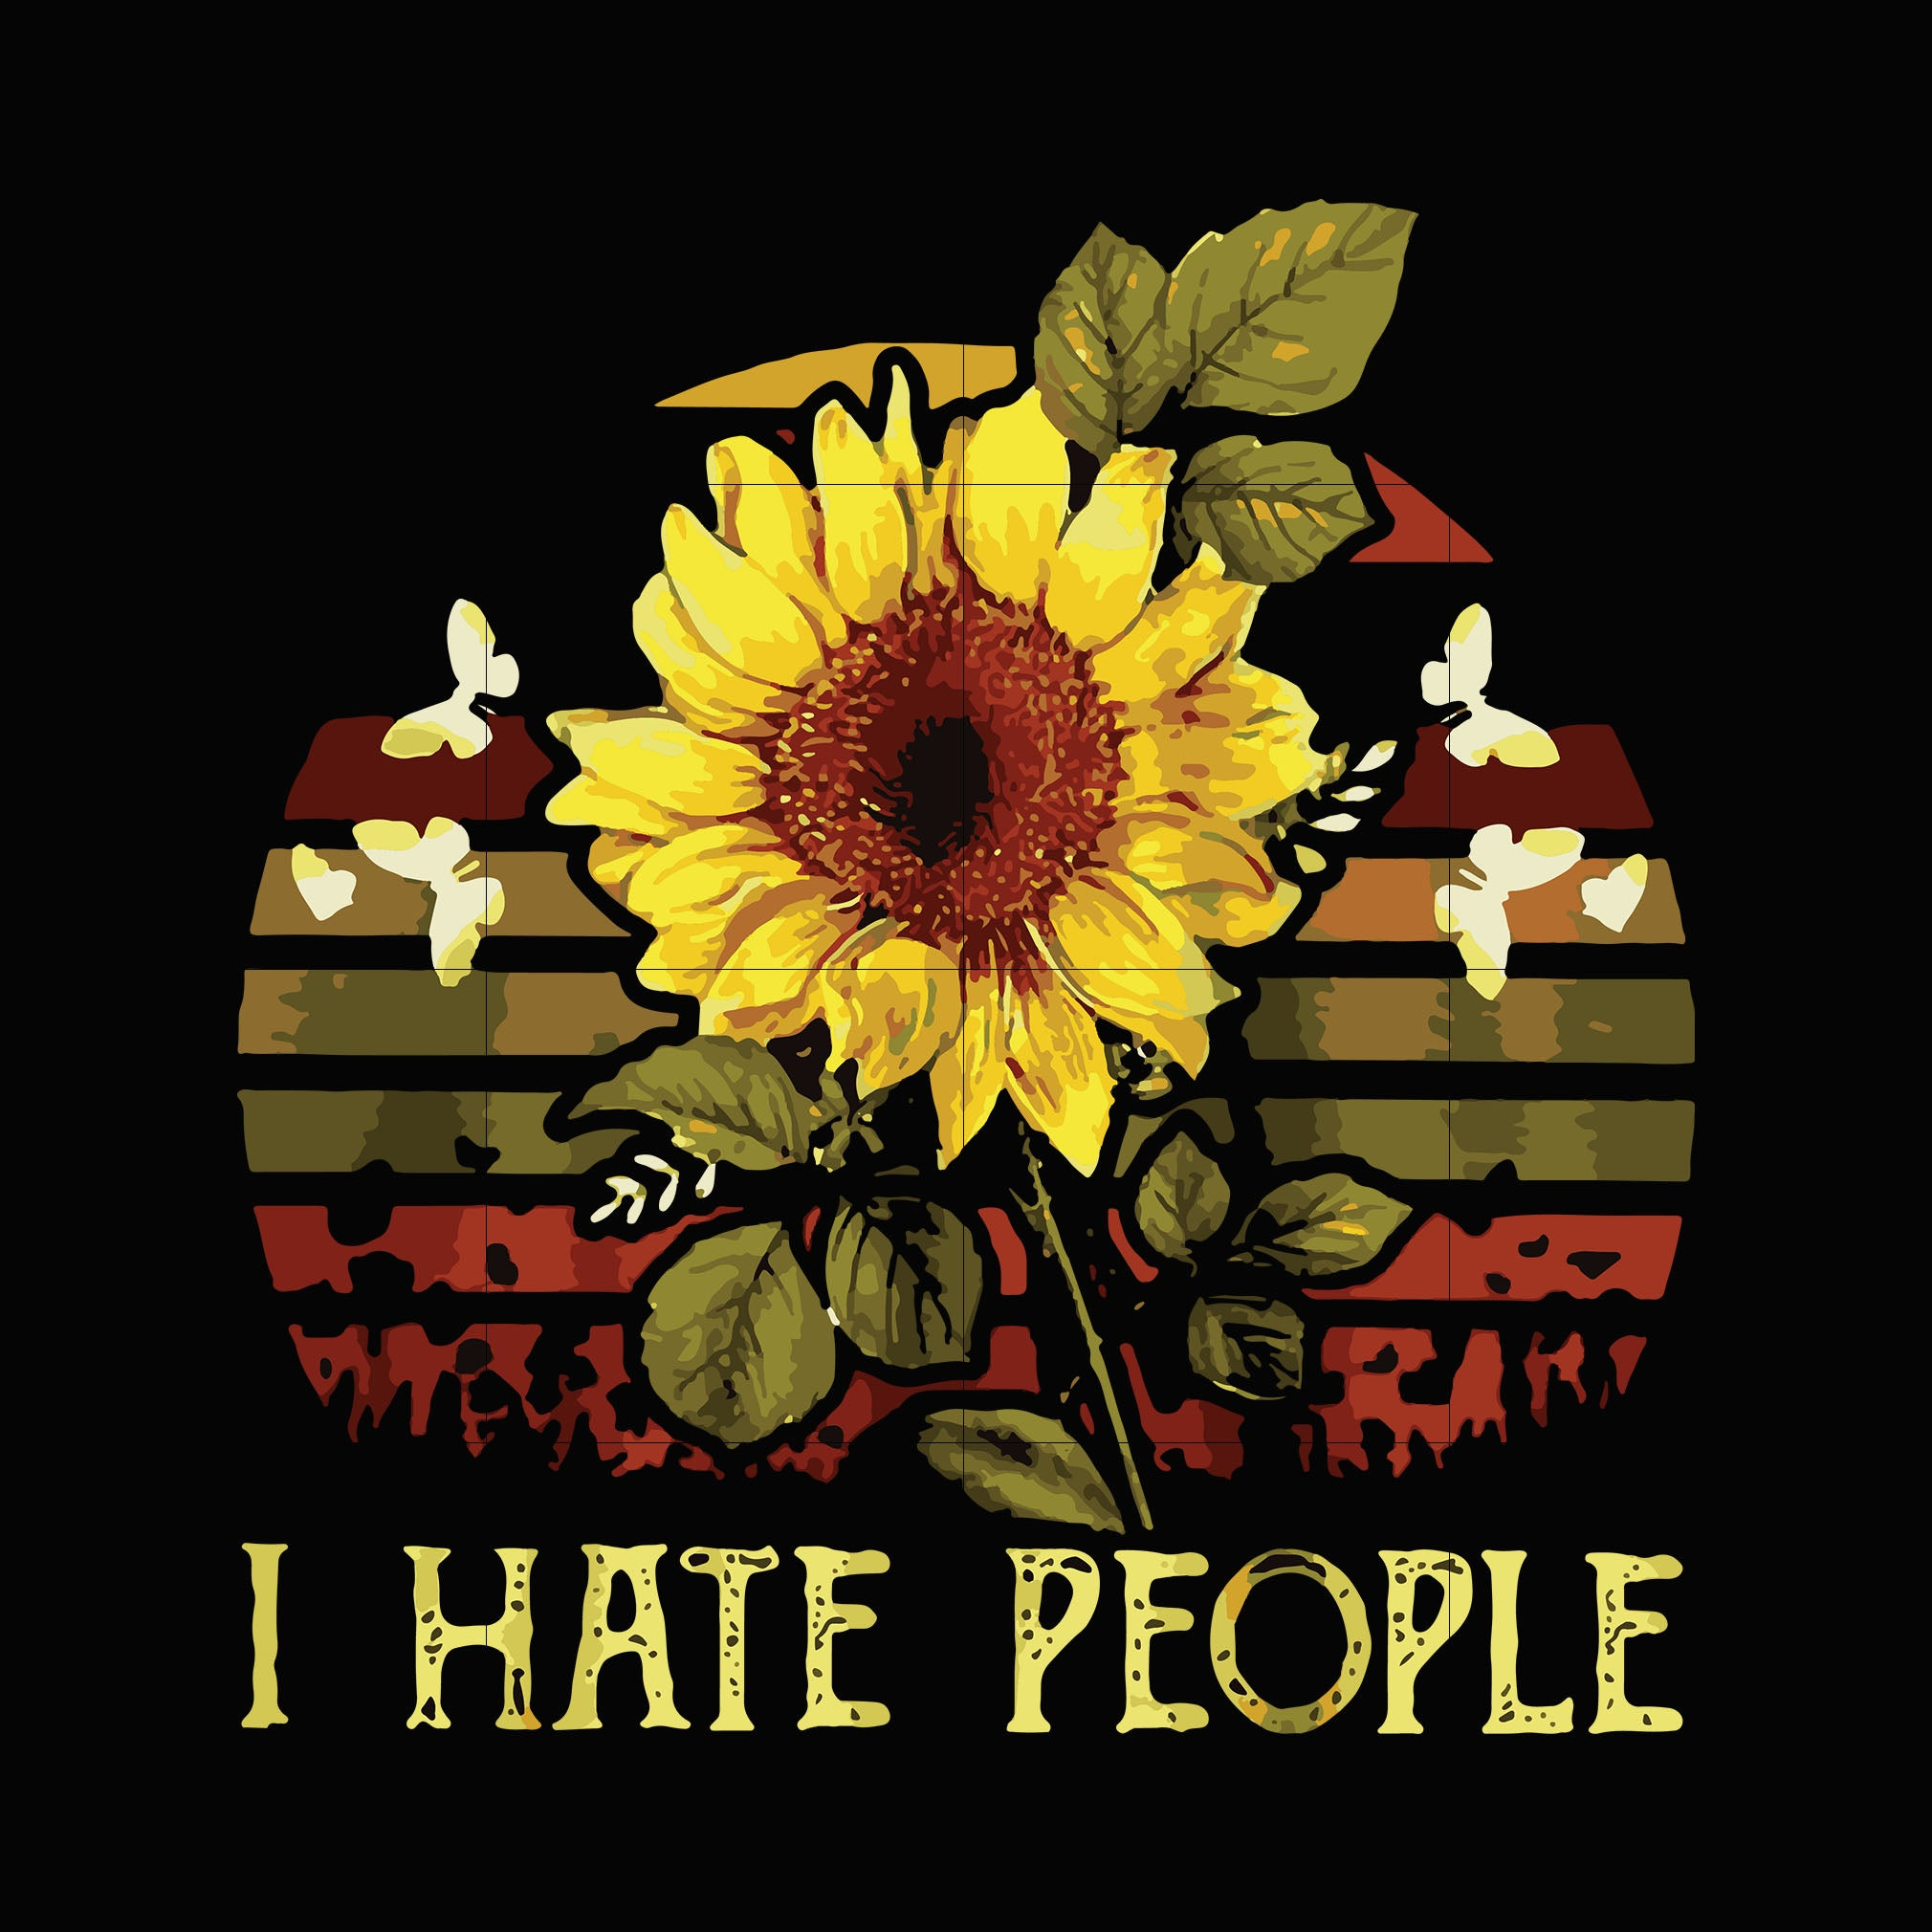 I hate people svg ,dxf,eps,png digital file